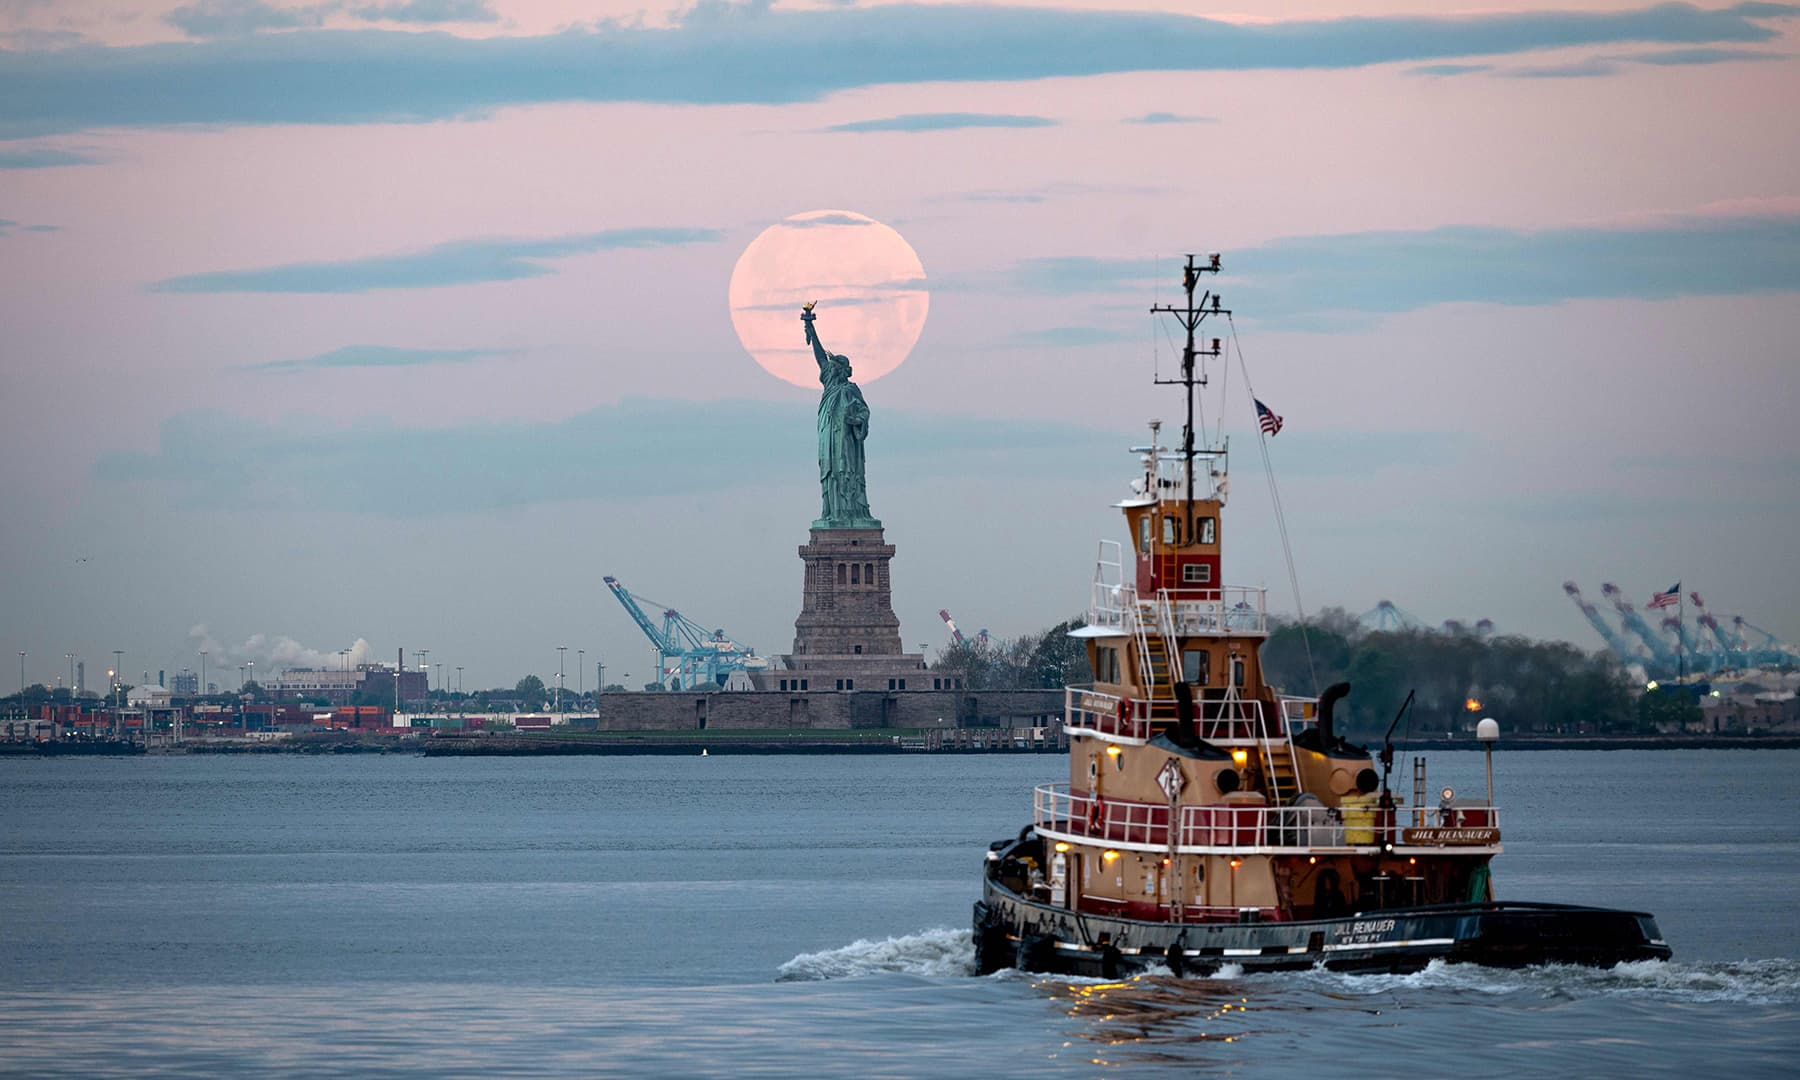 May's full moon sets behind the Statue of Liberty on May 7 in New York City. — AFP